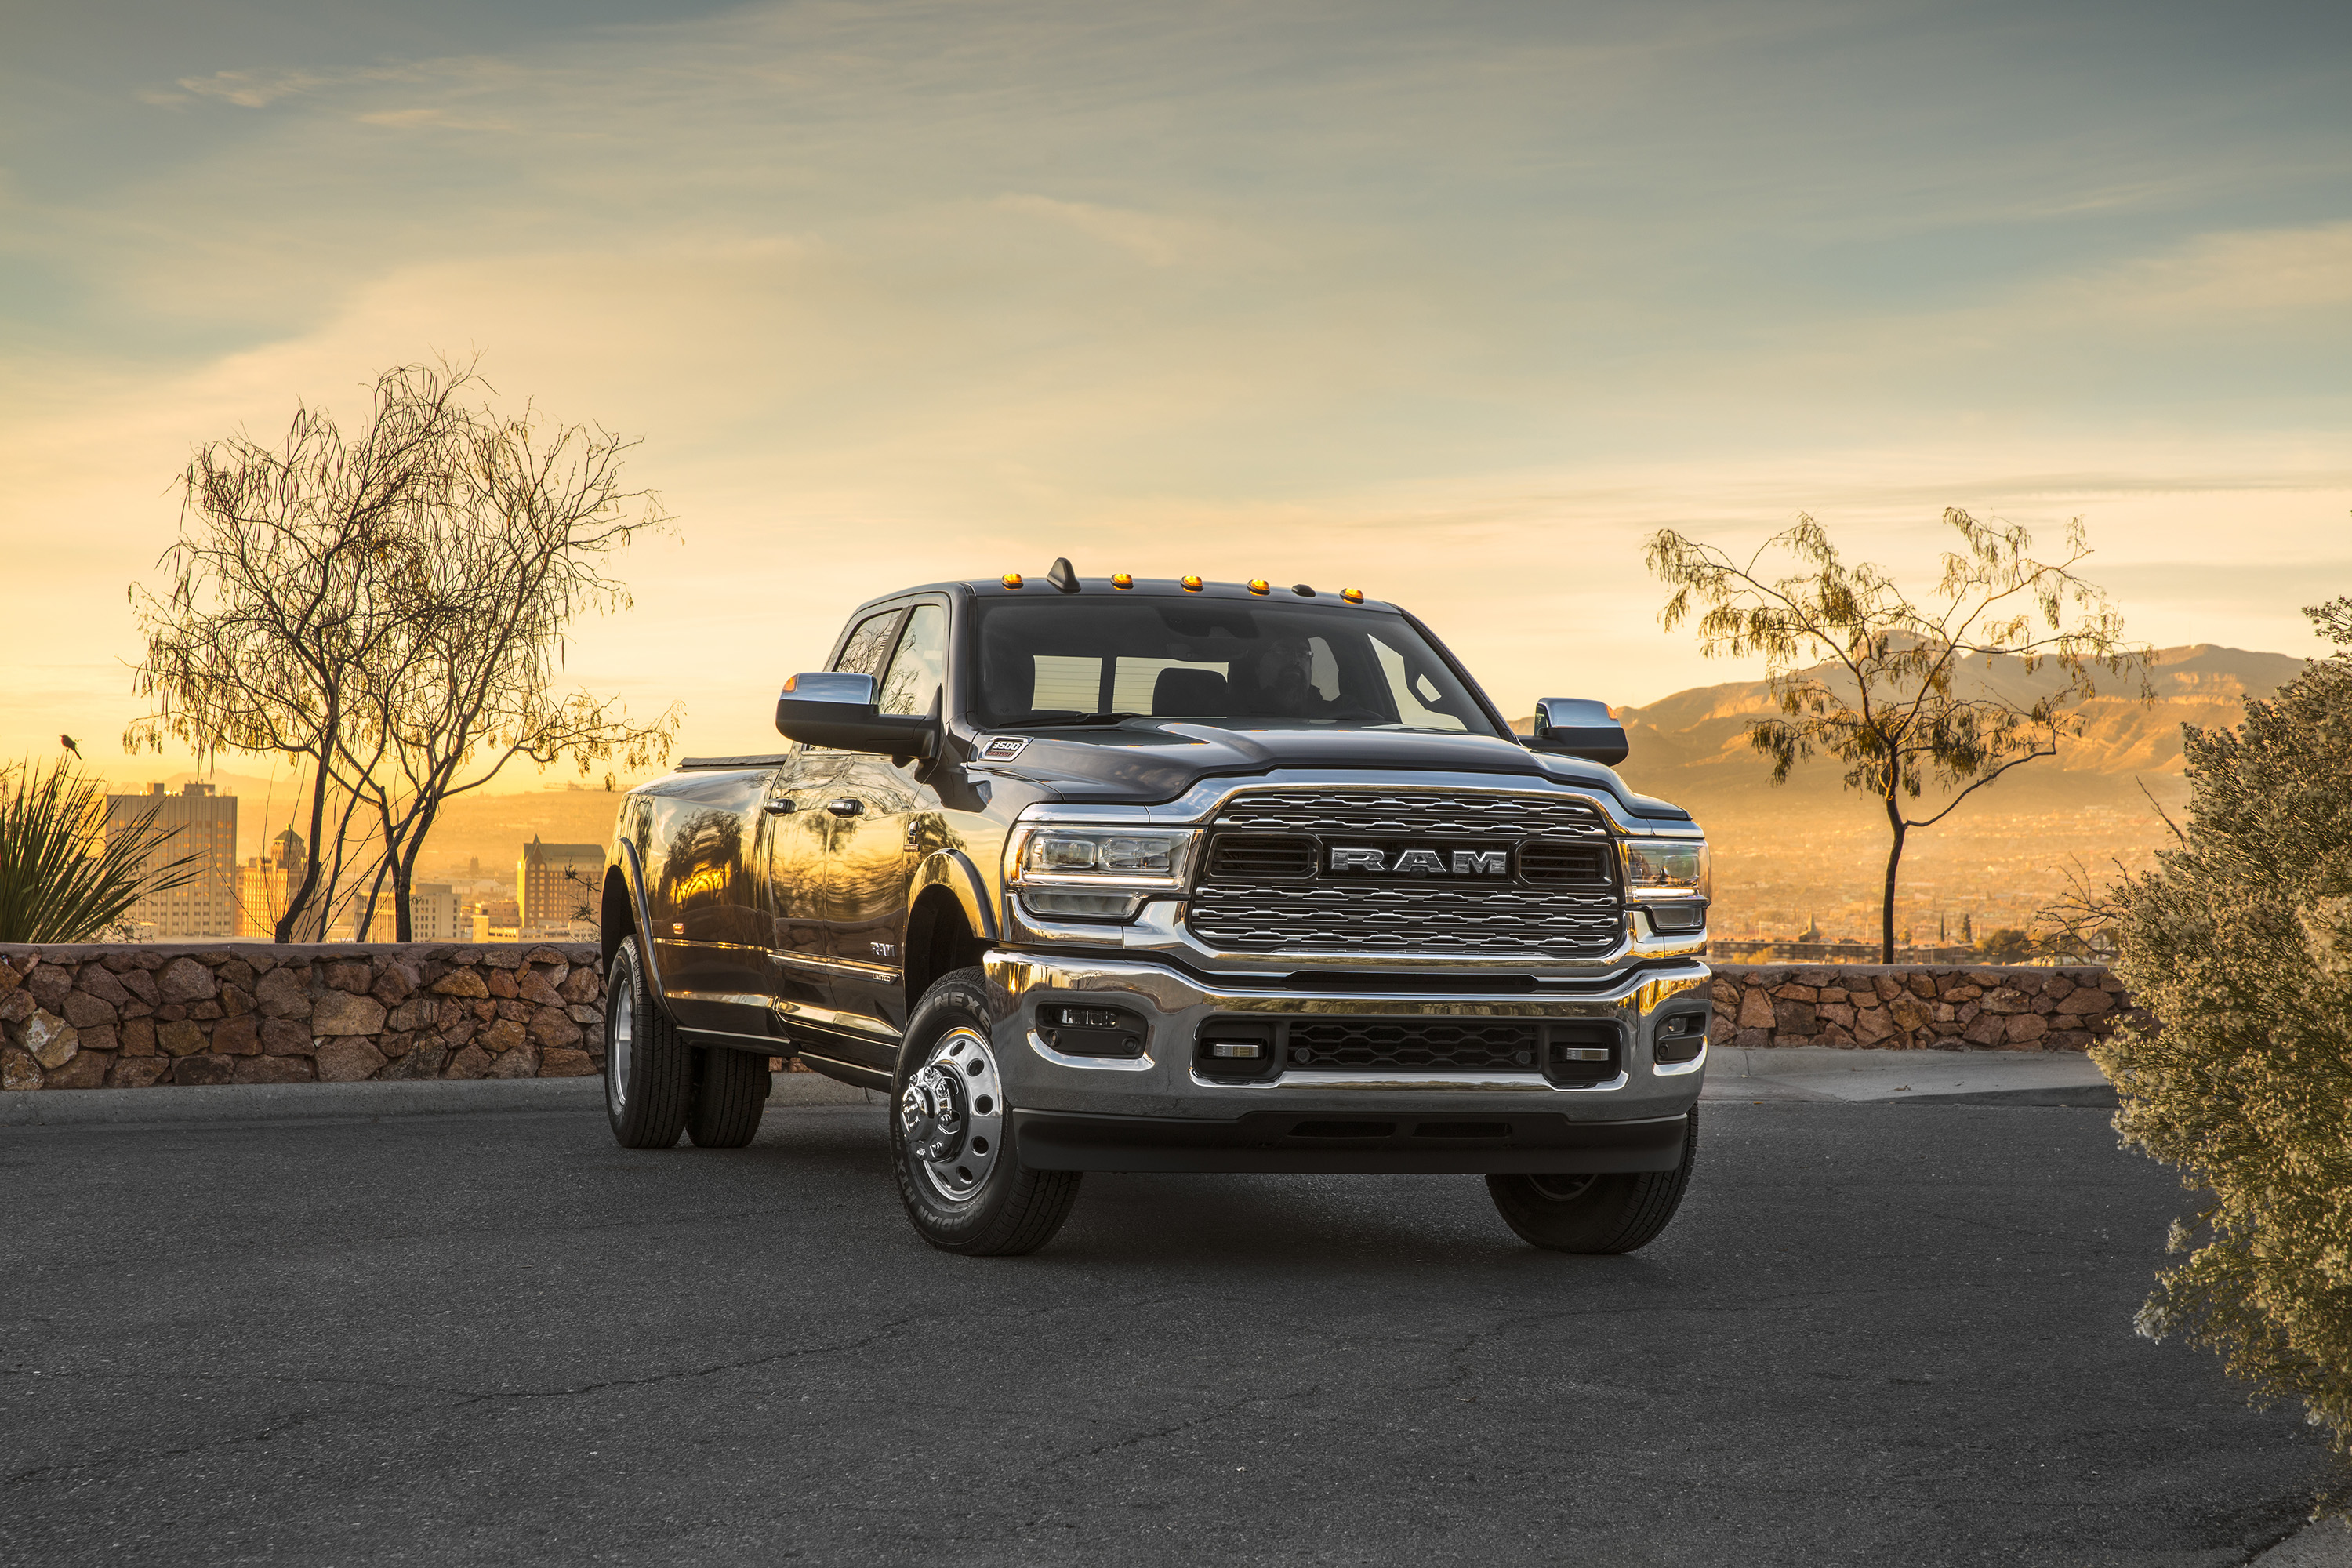 2019 Ram 3500 Heavy Duty Limited Crew Cab Dually Front Three-Quarter Wallpapers (6)